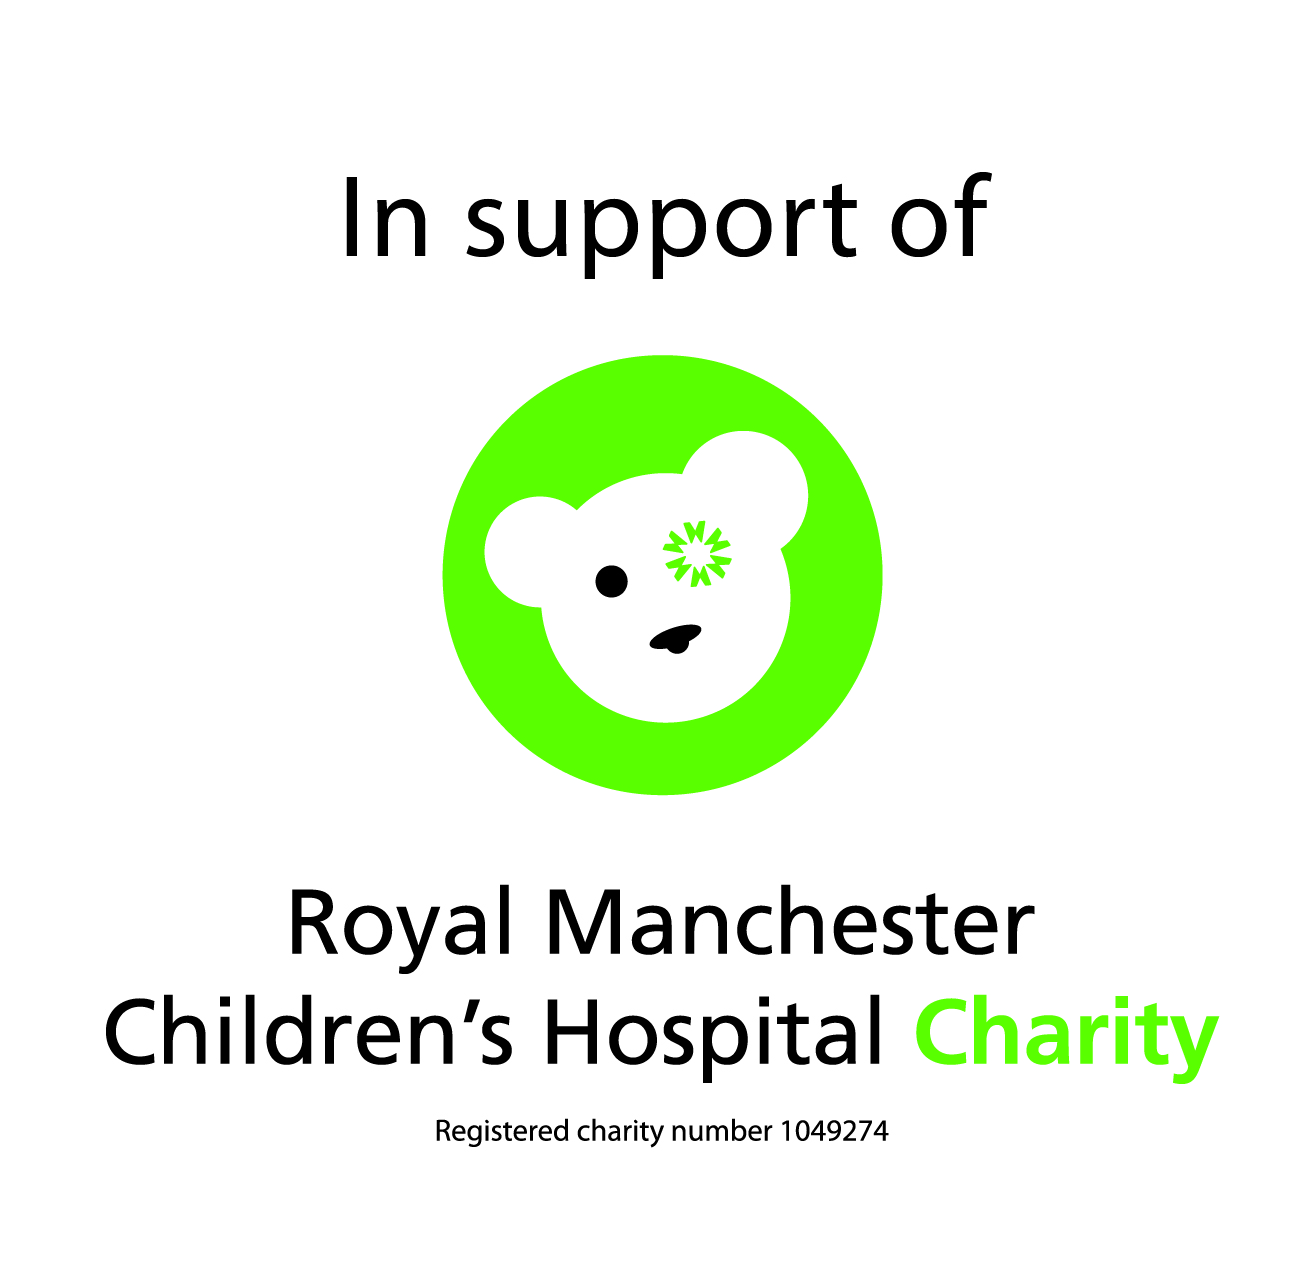 107455.001 Royal-Manchester-Childrens-Hospital-Charity_CMYK_IN SUPPORT OF_REG